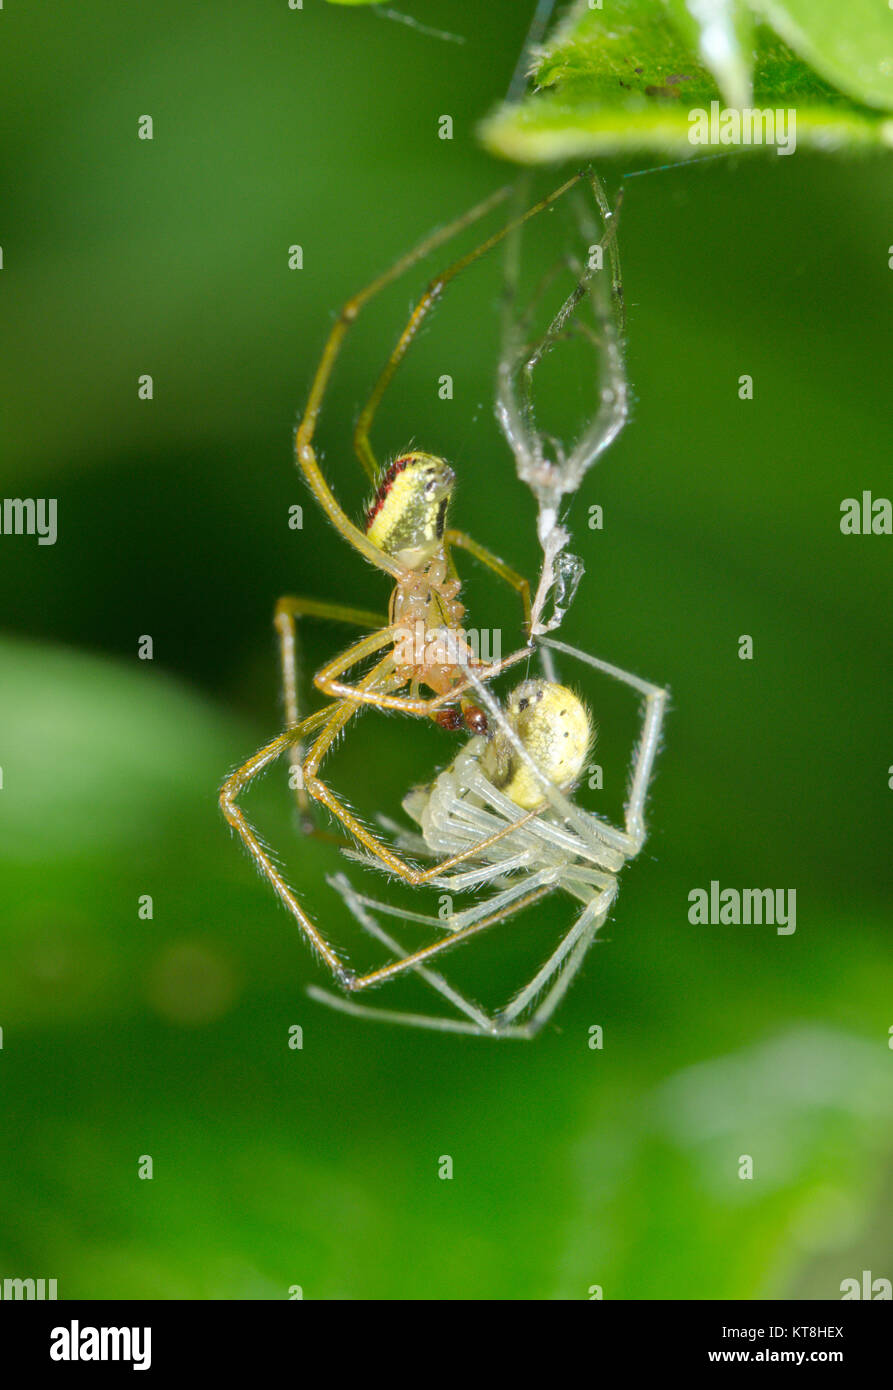 Candy striped Spider (Enoplognatha ovata - latimana) Mating pair of spiders 2 of 2. Sussex, UK - Stock Image